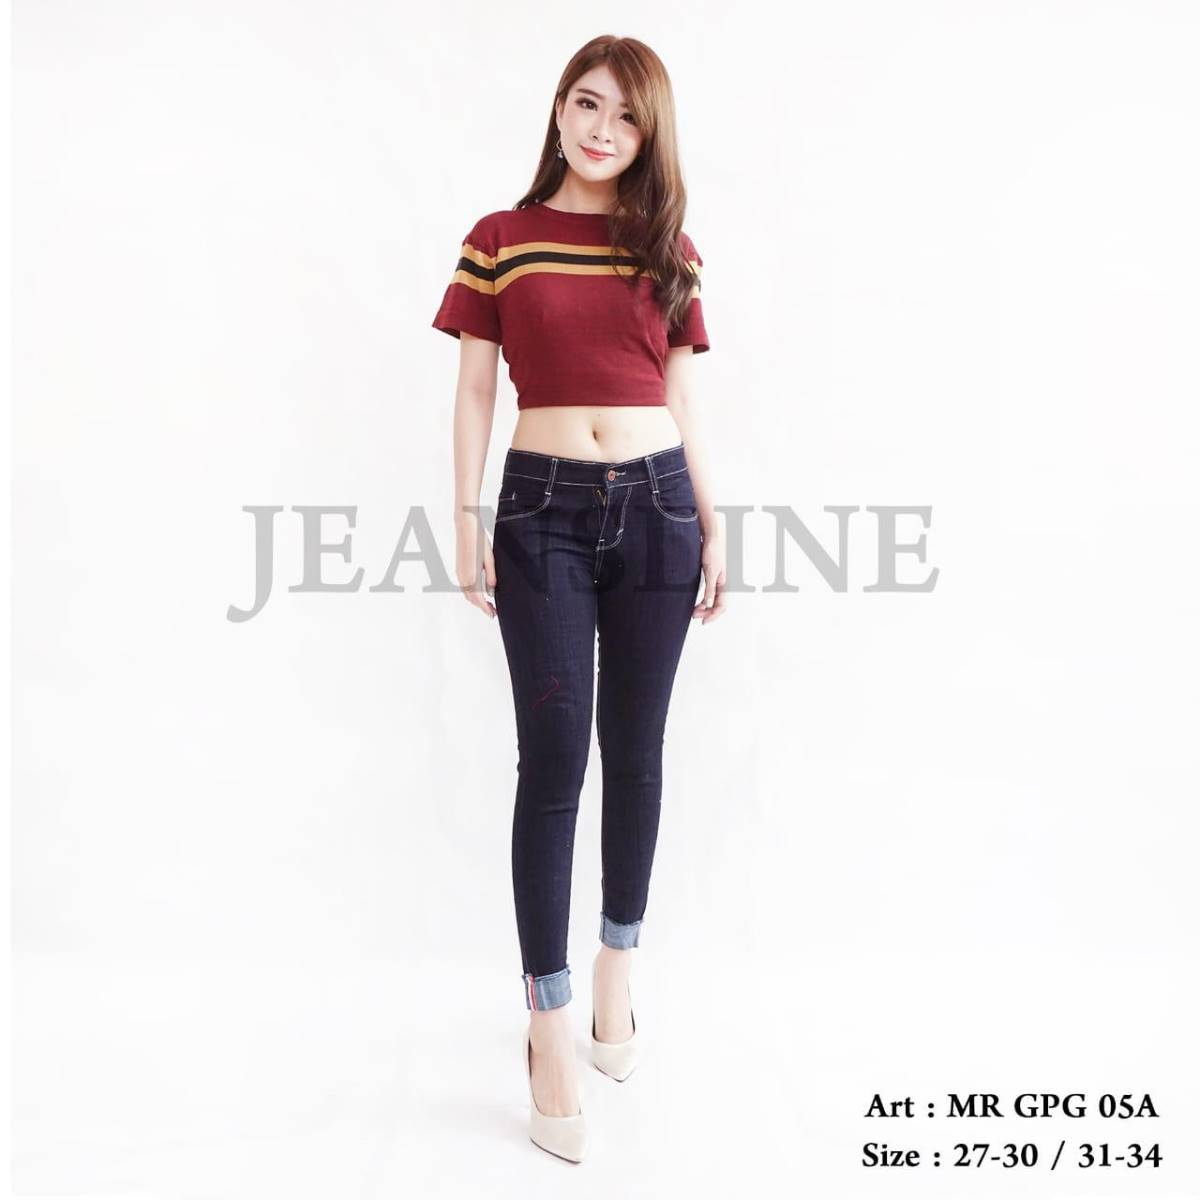 Celana Panjang Jeans Ladies (mr Gpg 05a) - Size 31, 32, 33, 340